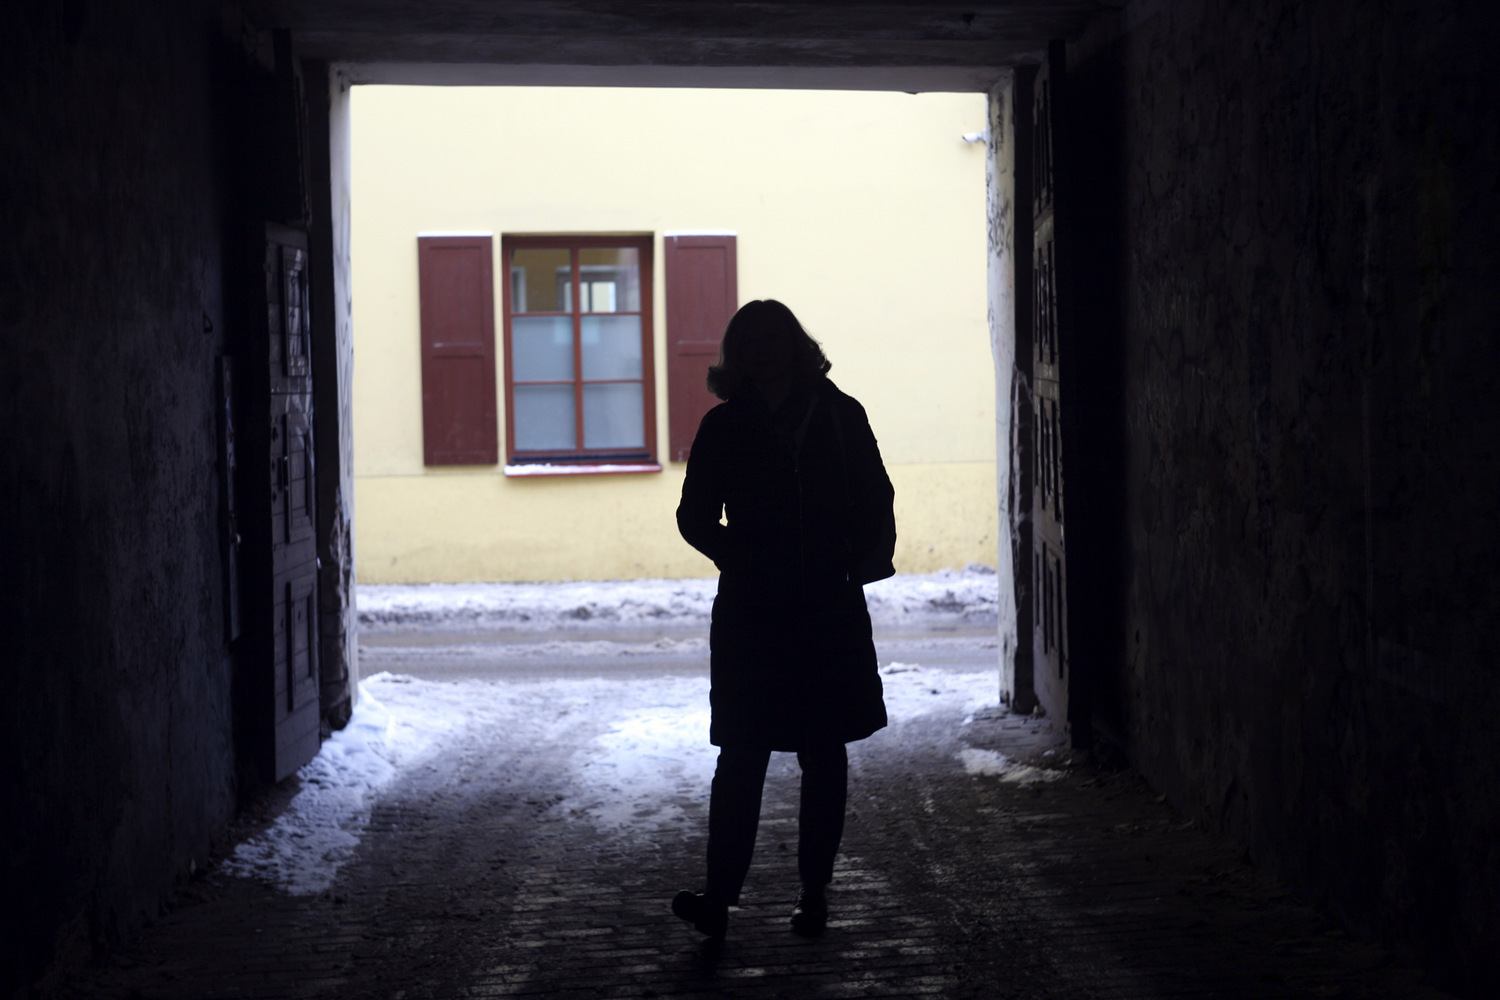 Reviaka in the backyard of the Belarusian Human Rights House in Vilnius. December 2018 Photo: Yauheniya Stryzhak / Barys Zvozskau Belarusian Human Rights House